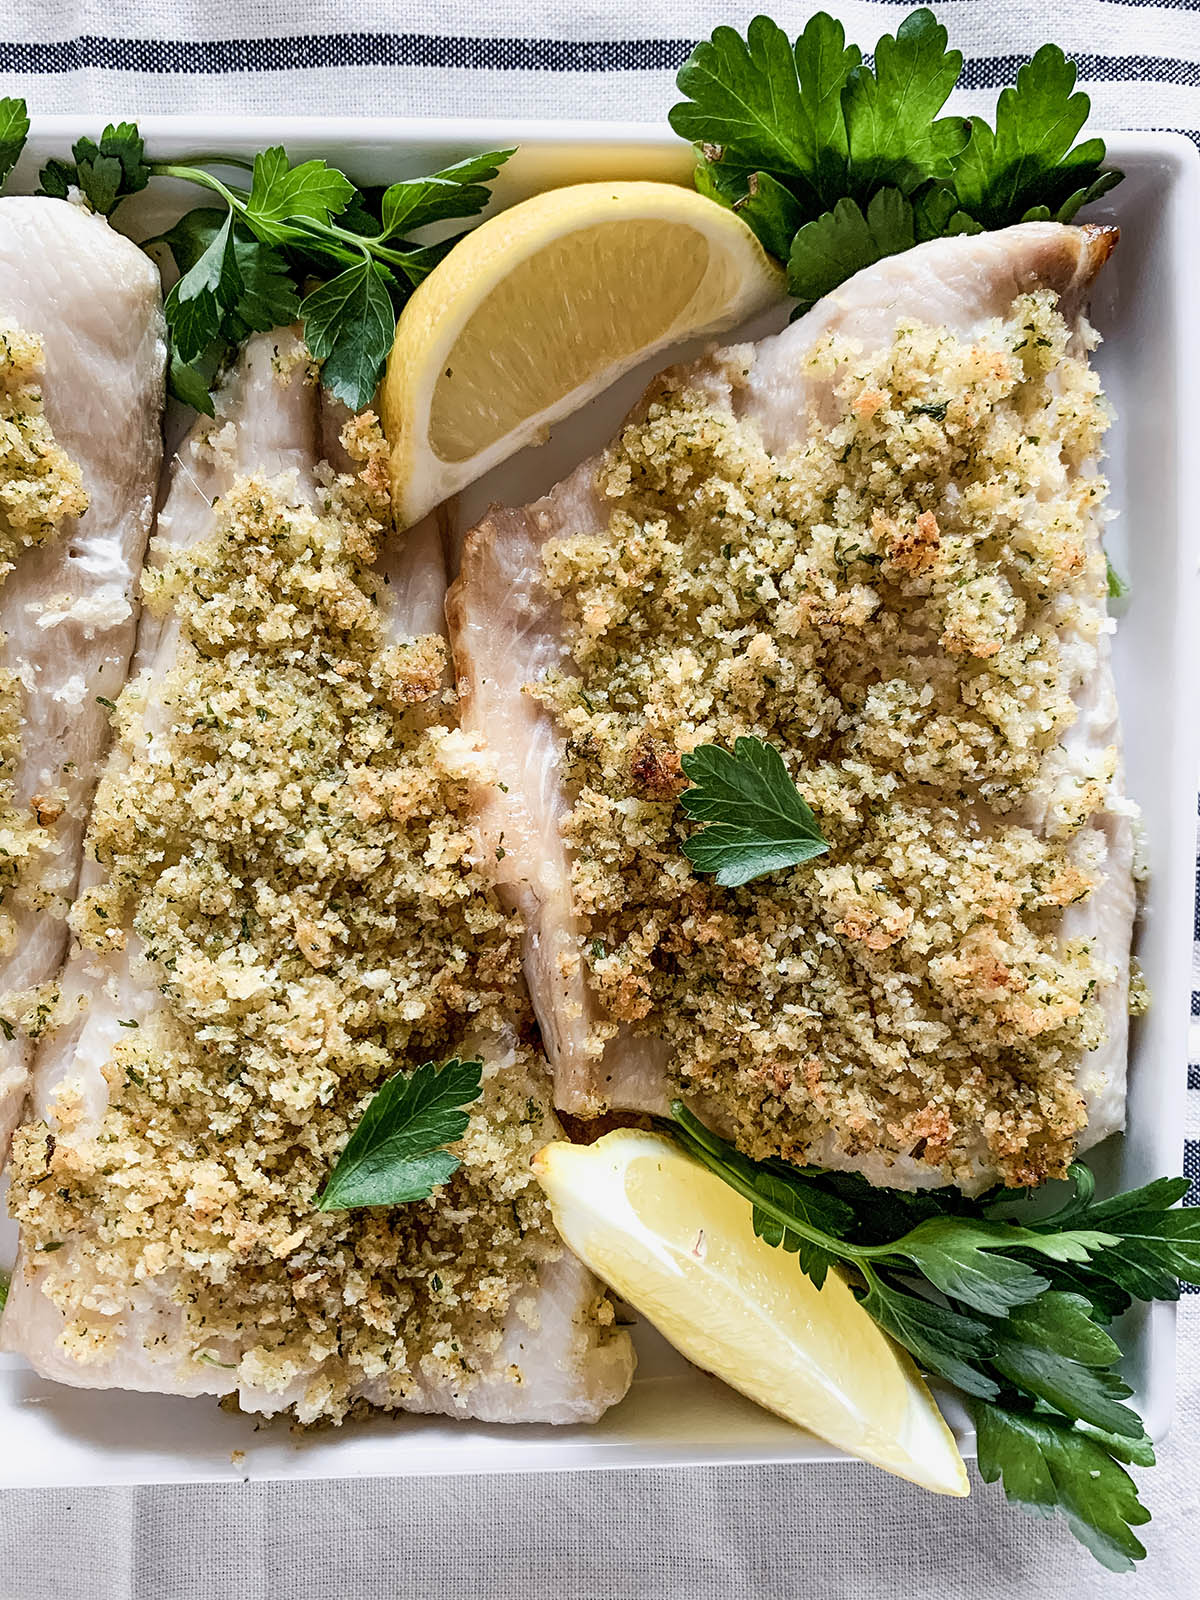 Close up of two portions of baked Panko-crusted white fish on a white platter topped with lemon wedges and parsley leaves.